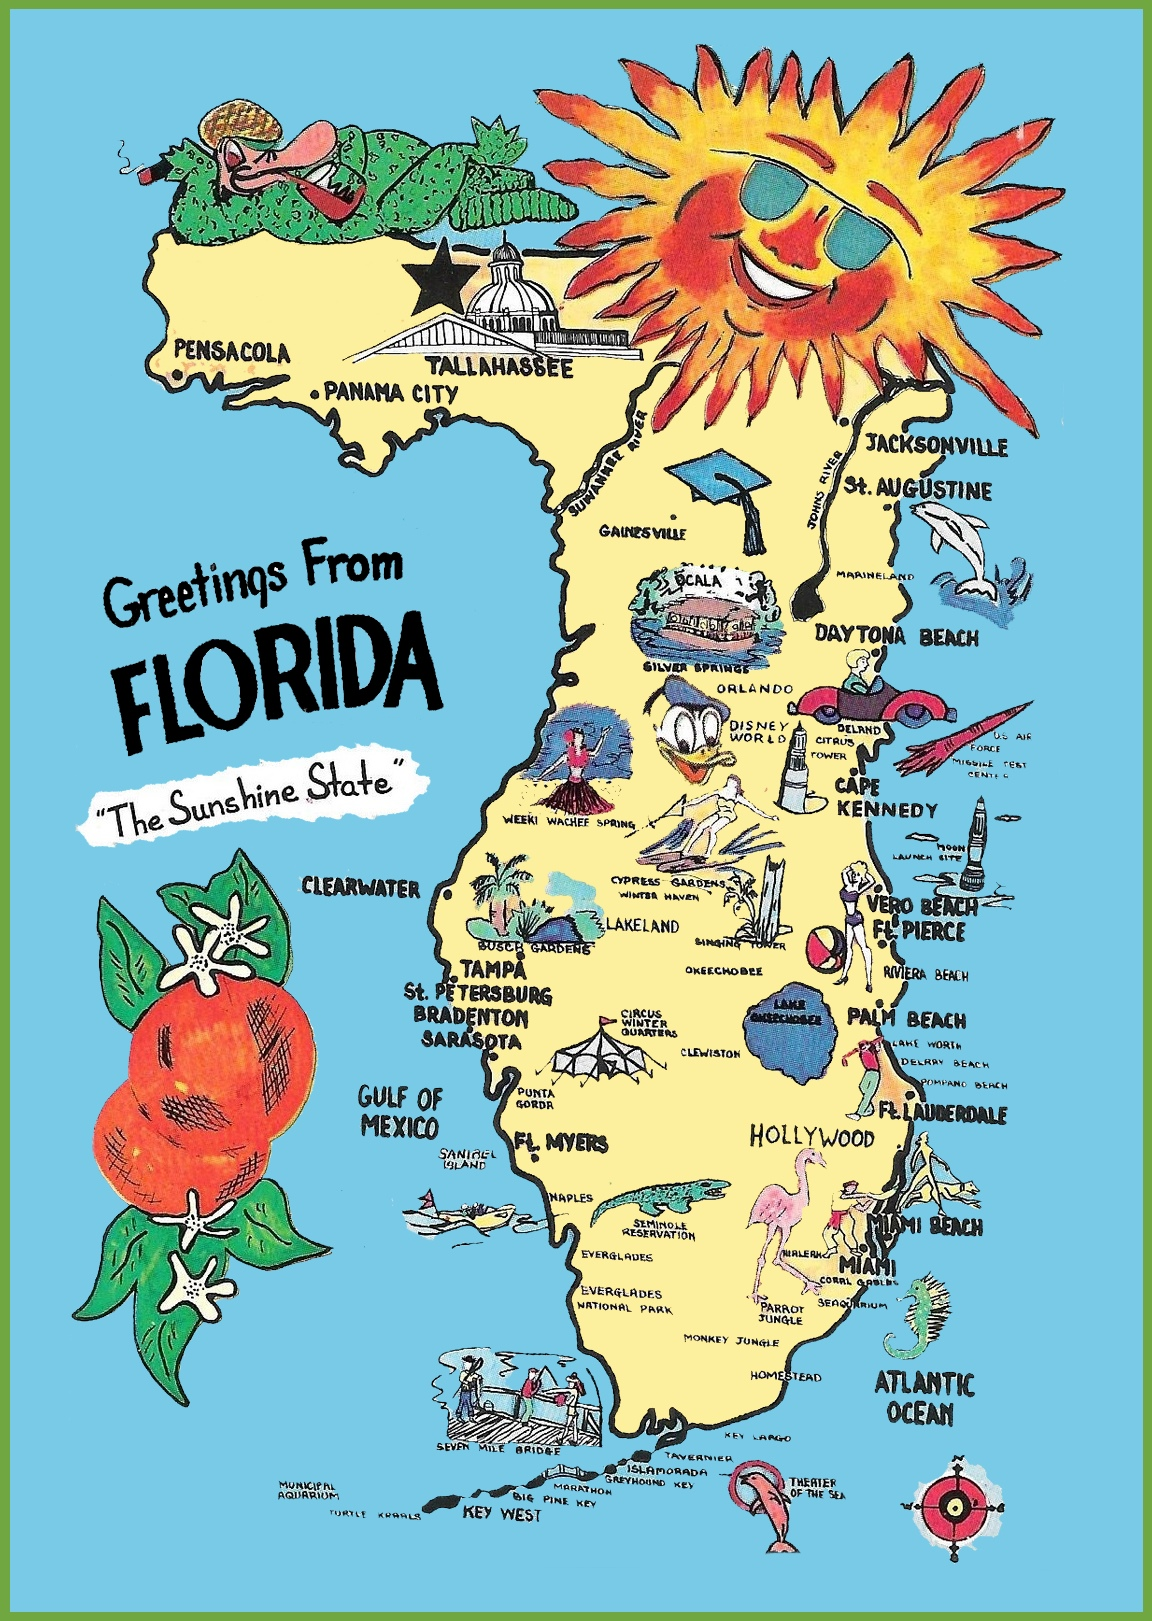 Pictorial Travel Map Of Florida - Florida map beach